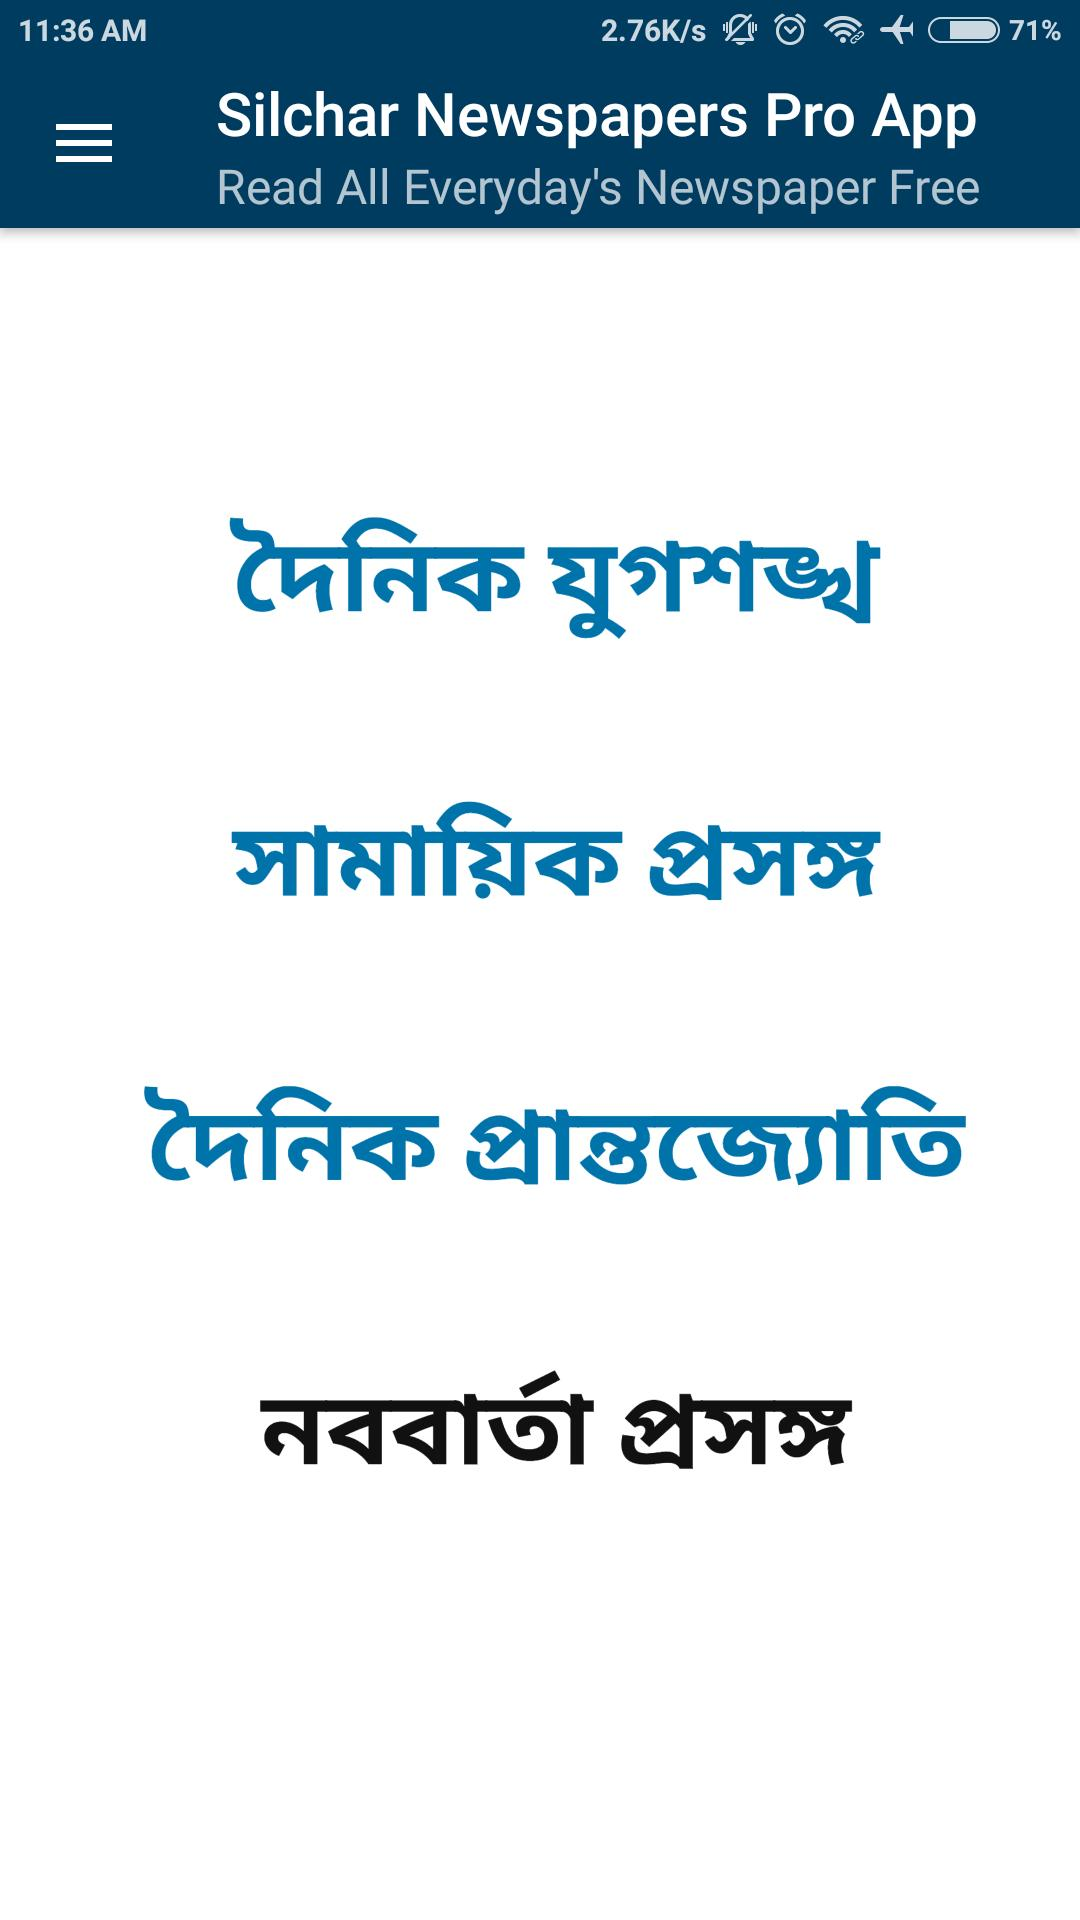 Silchar Newspapers All In One Pro Application for Android